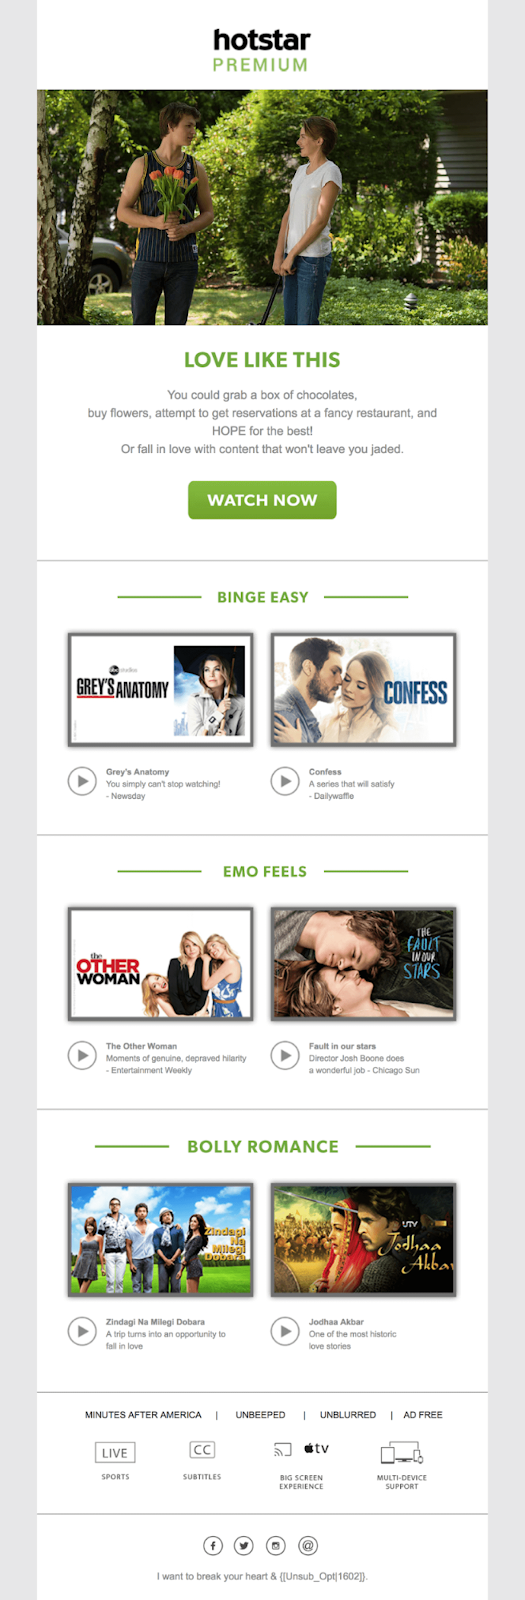 hotstar ran an occasion-based email campaign